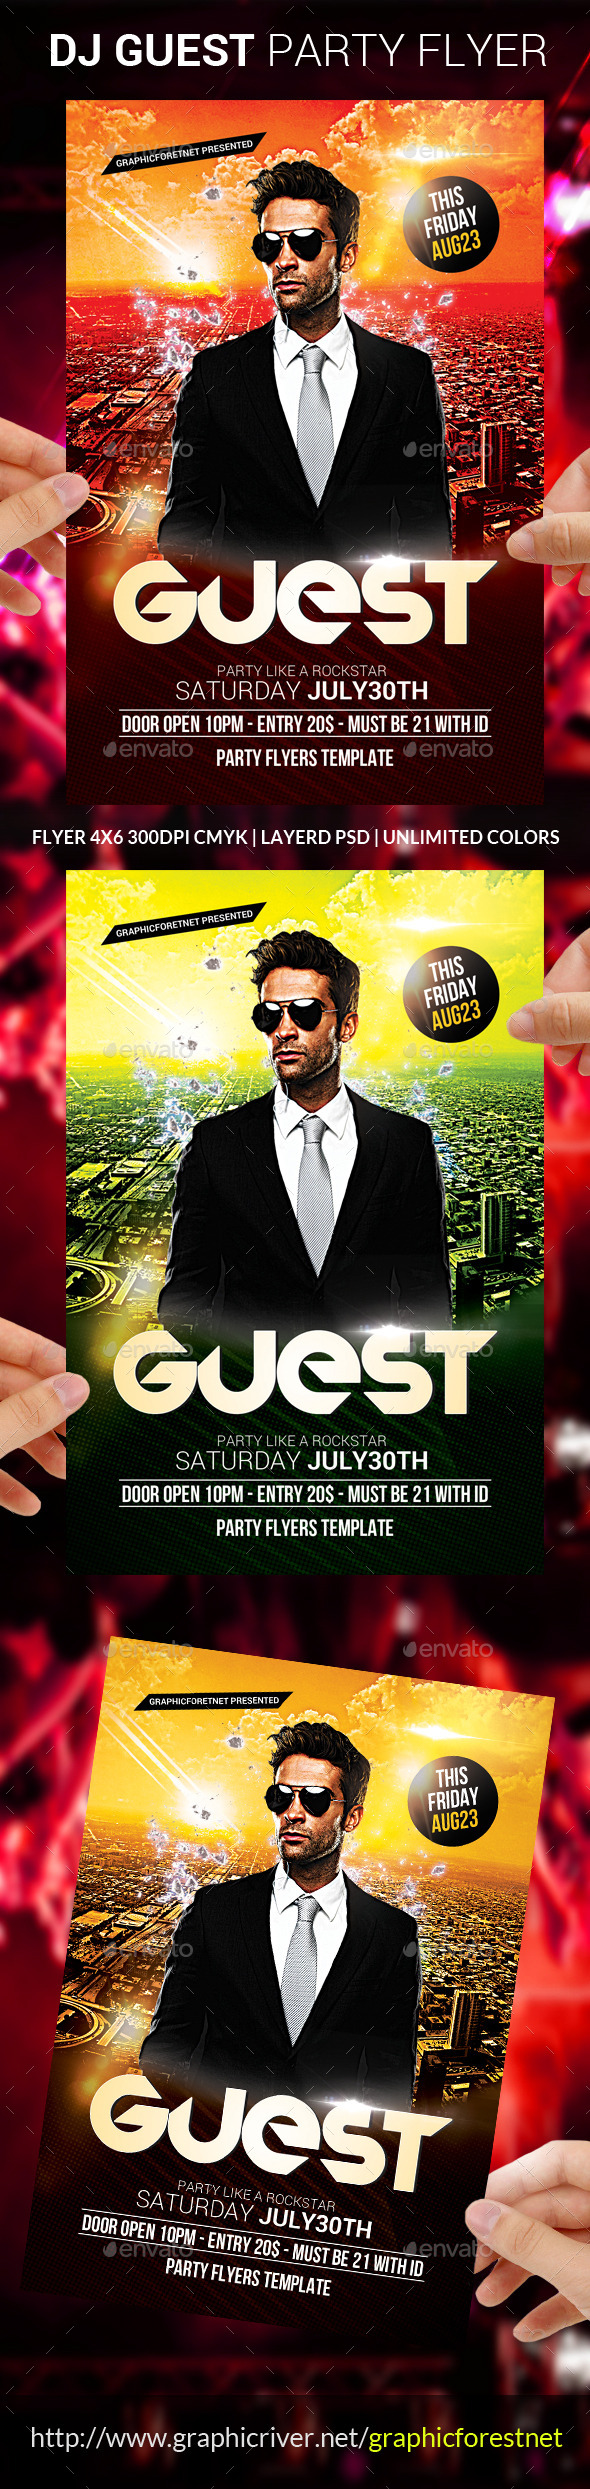 GraphicRiver Dj Guest Flyer Template 8812908